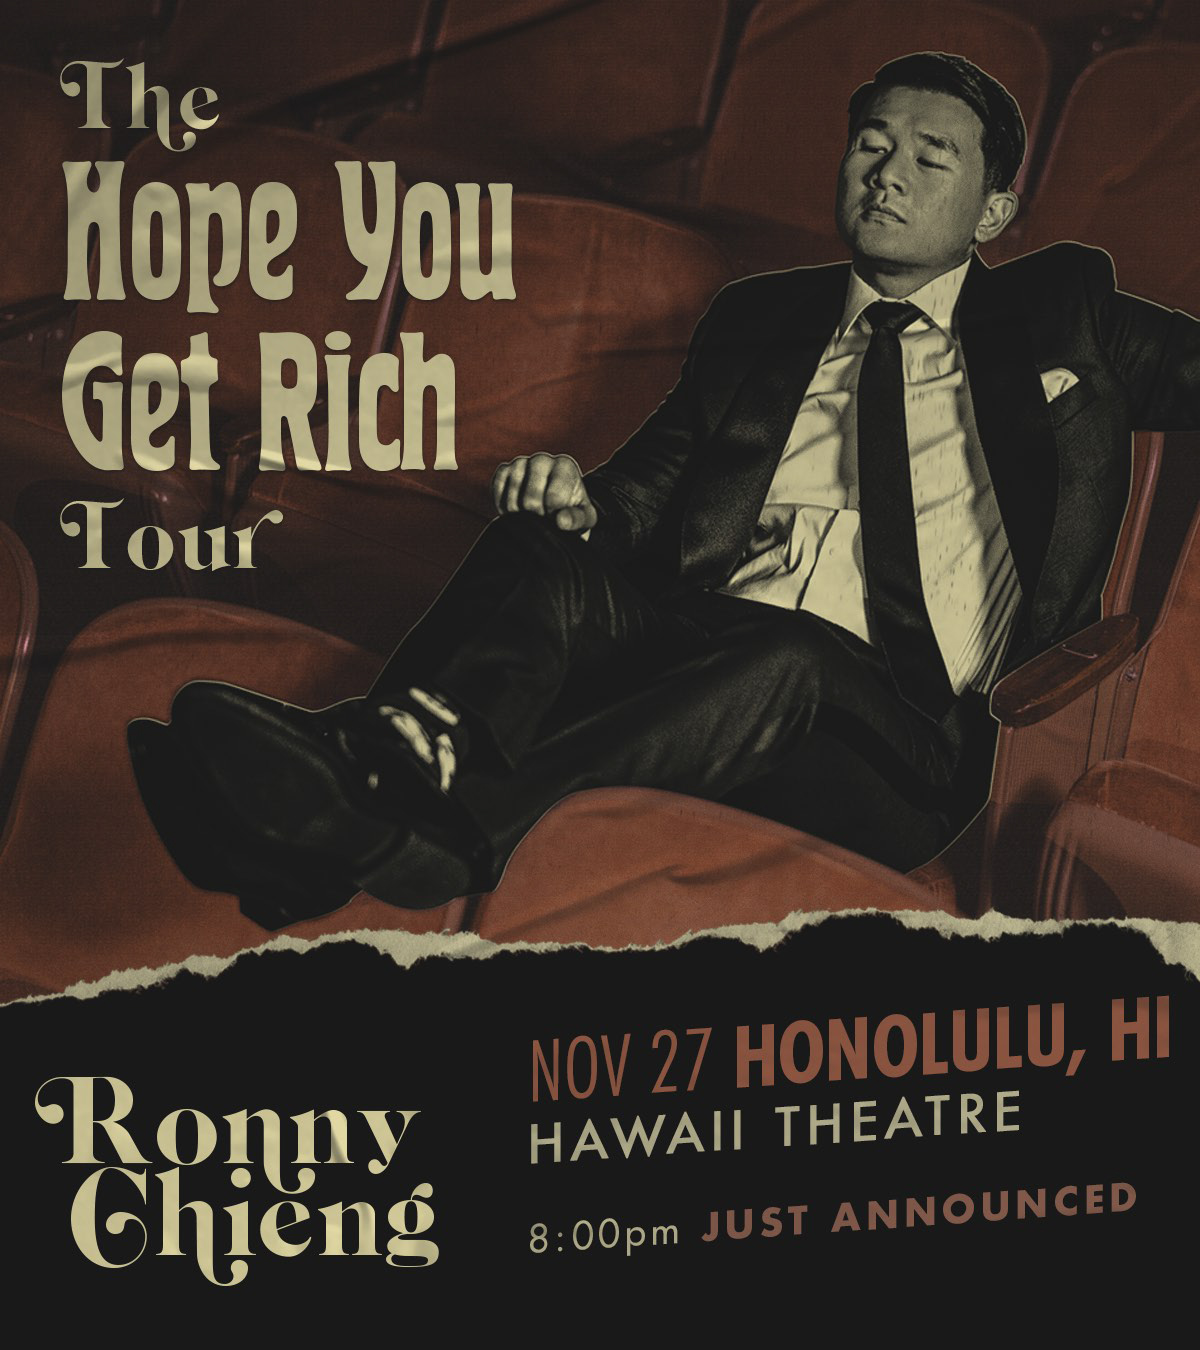 RonnyChieng_HopeYouGetRichTour2021_CITY